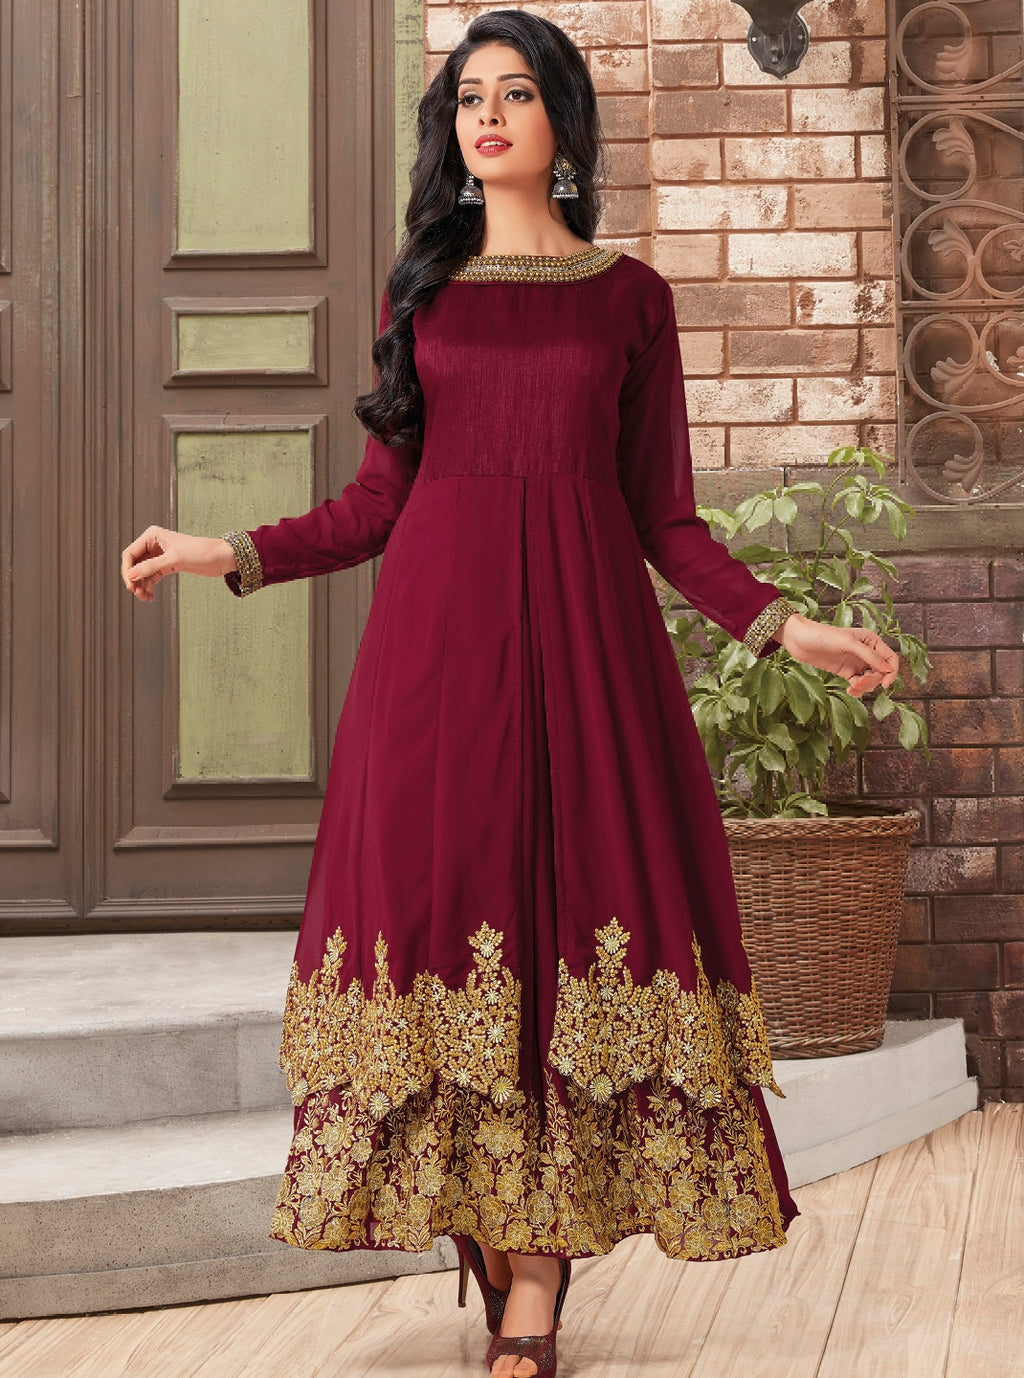 Maroon Color Georgette Readymade Festive Wear Kurtis With Dupatta ( Sizes - 40,42) Odhani Catlog SJ-5933